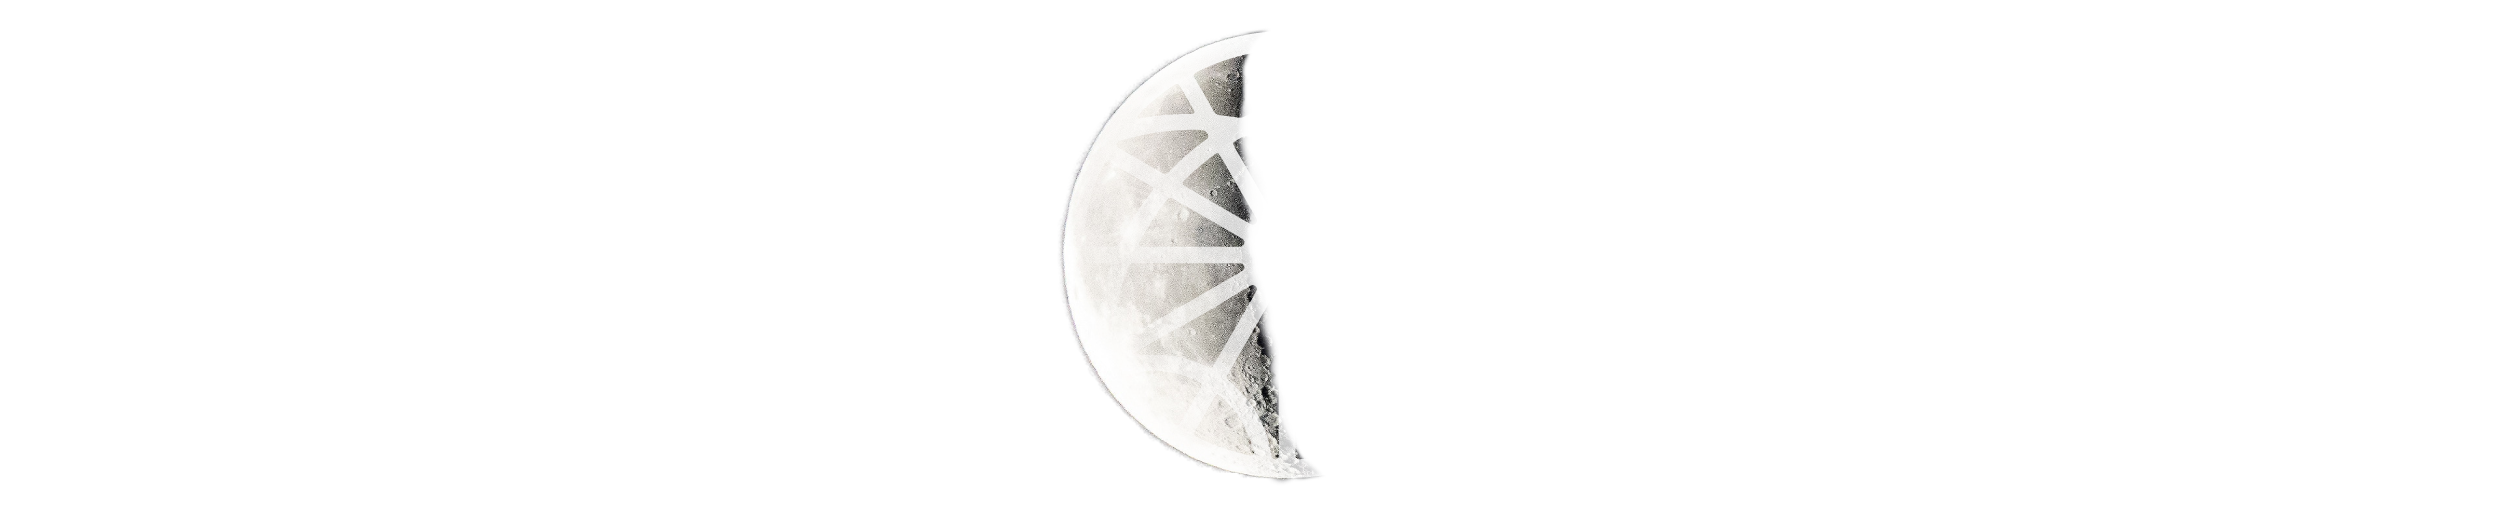 hrs-moon.png